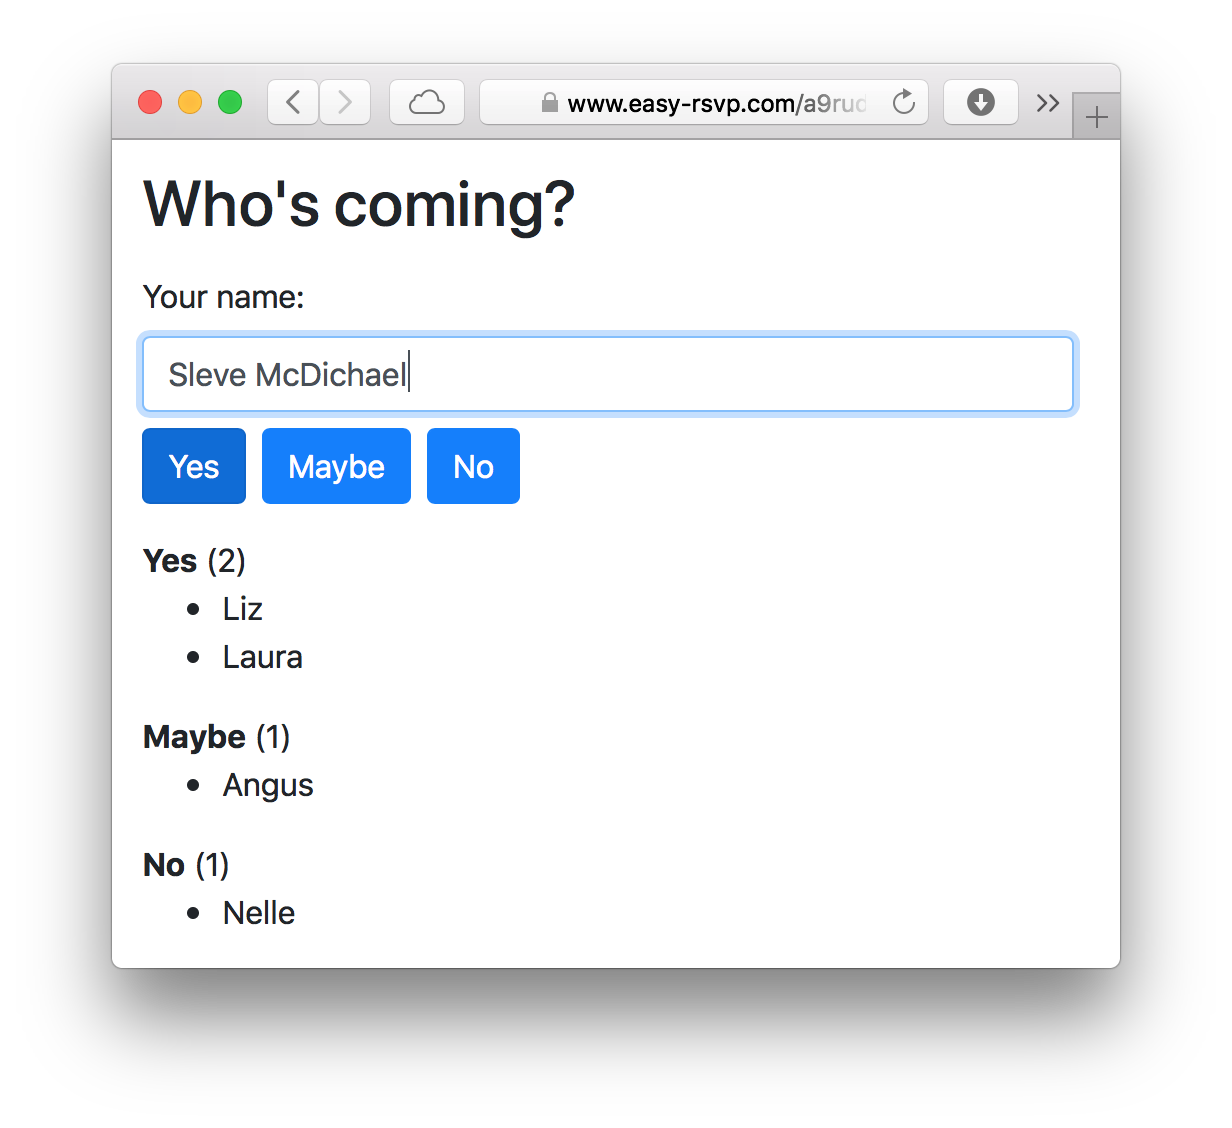 The Easy RSVP form: 'Sleve McDichael' is about to reply 'Yes'. List of guests who RSVP'd grouped by reply (yes, maybe, no).